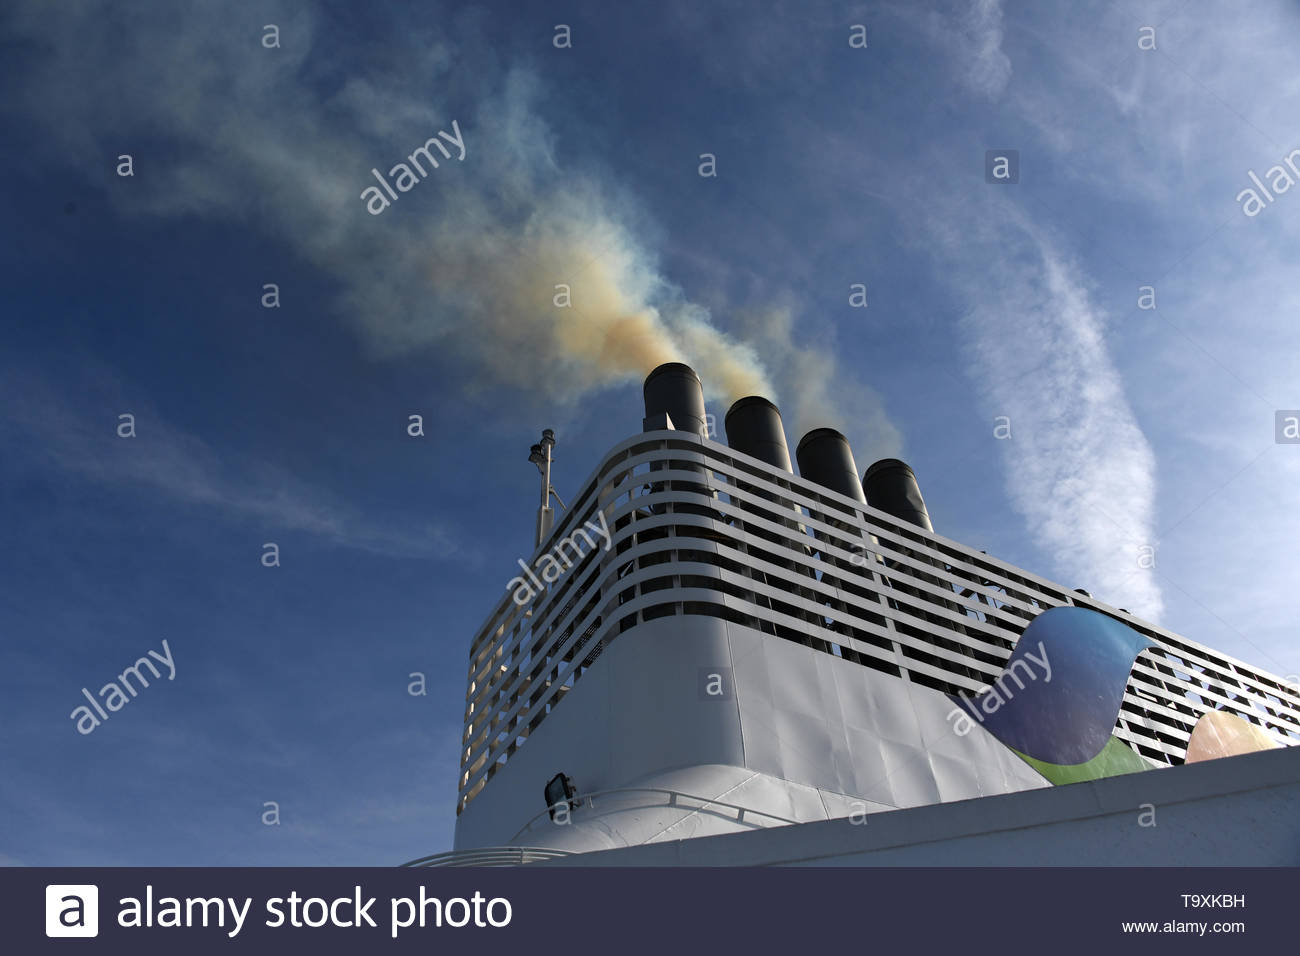 Brittany Ferry - Normandie diesel fumes, smoke as the engines start. Stock Photo